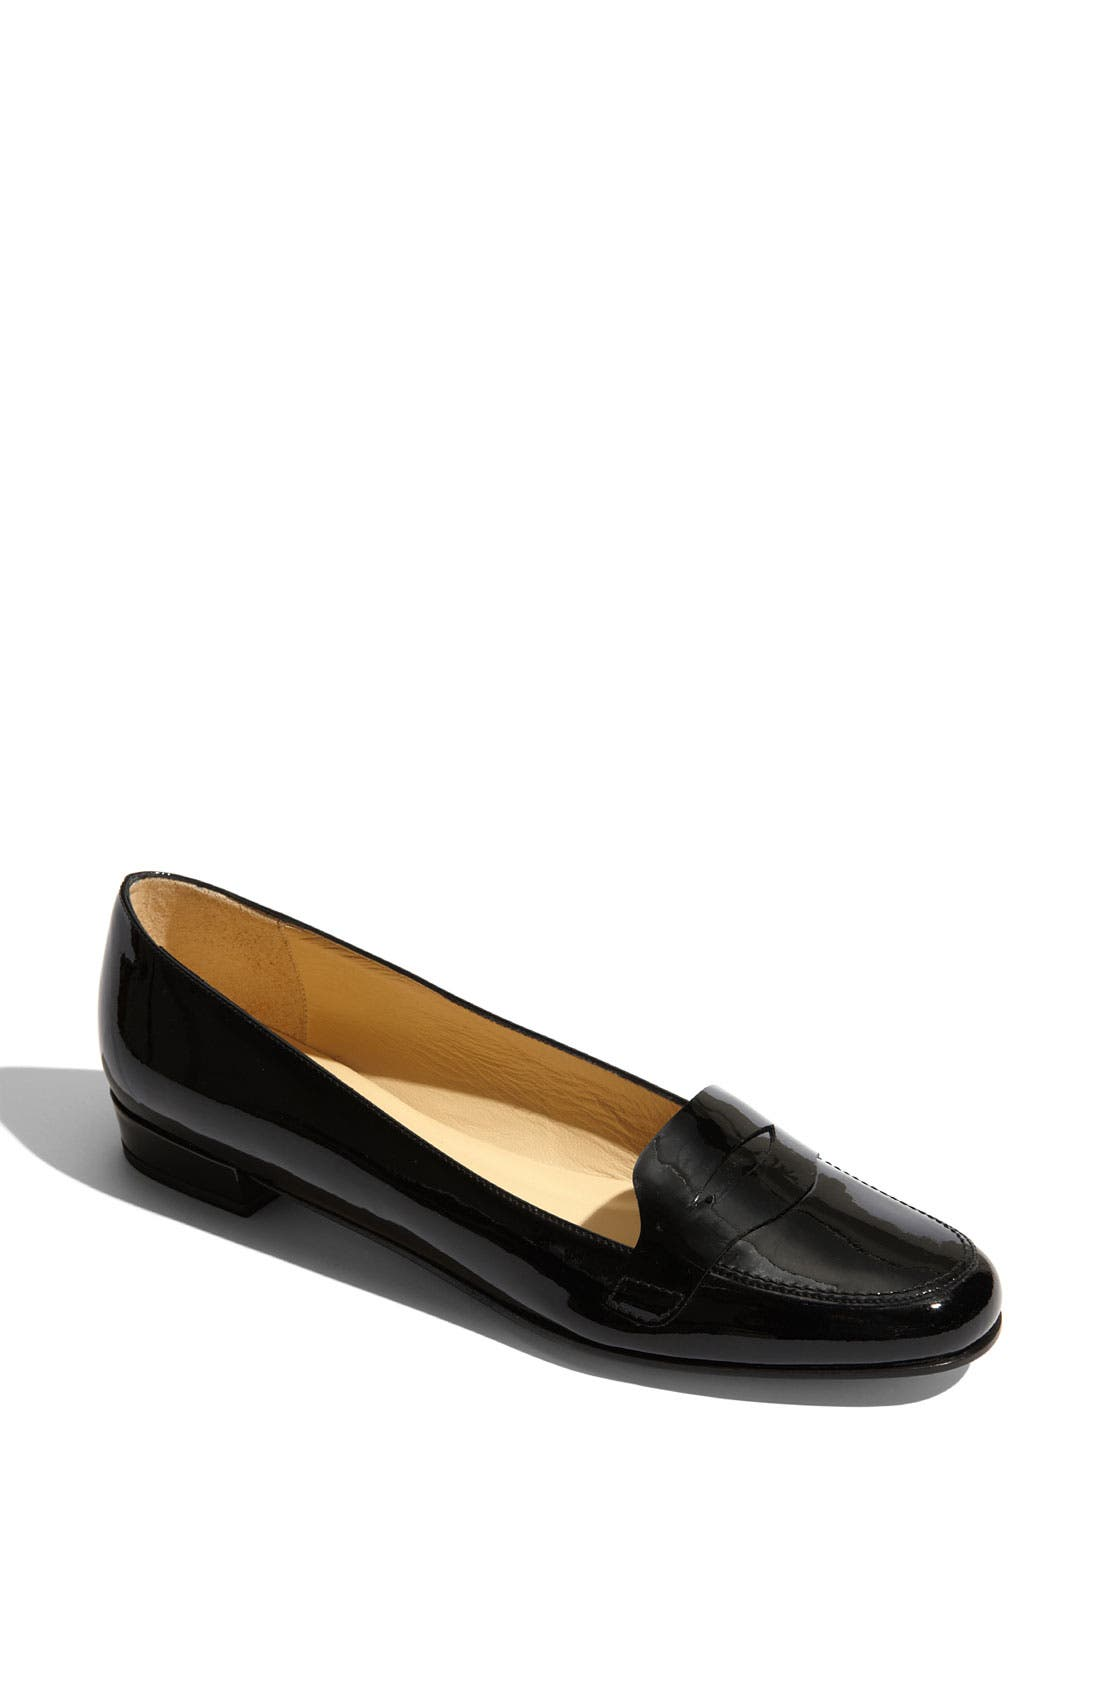 Alternate Image 1 Selected - kate spade new york 'olympia' loafer